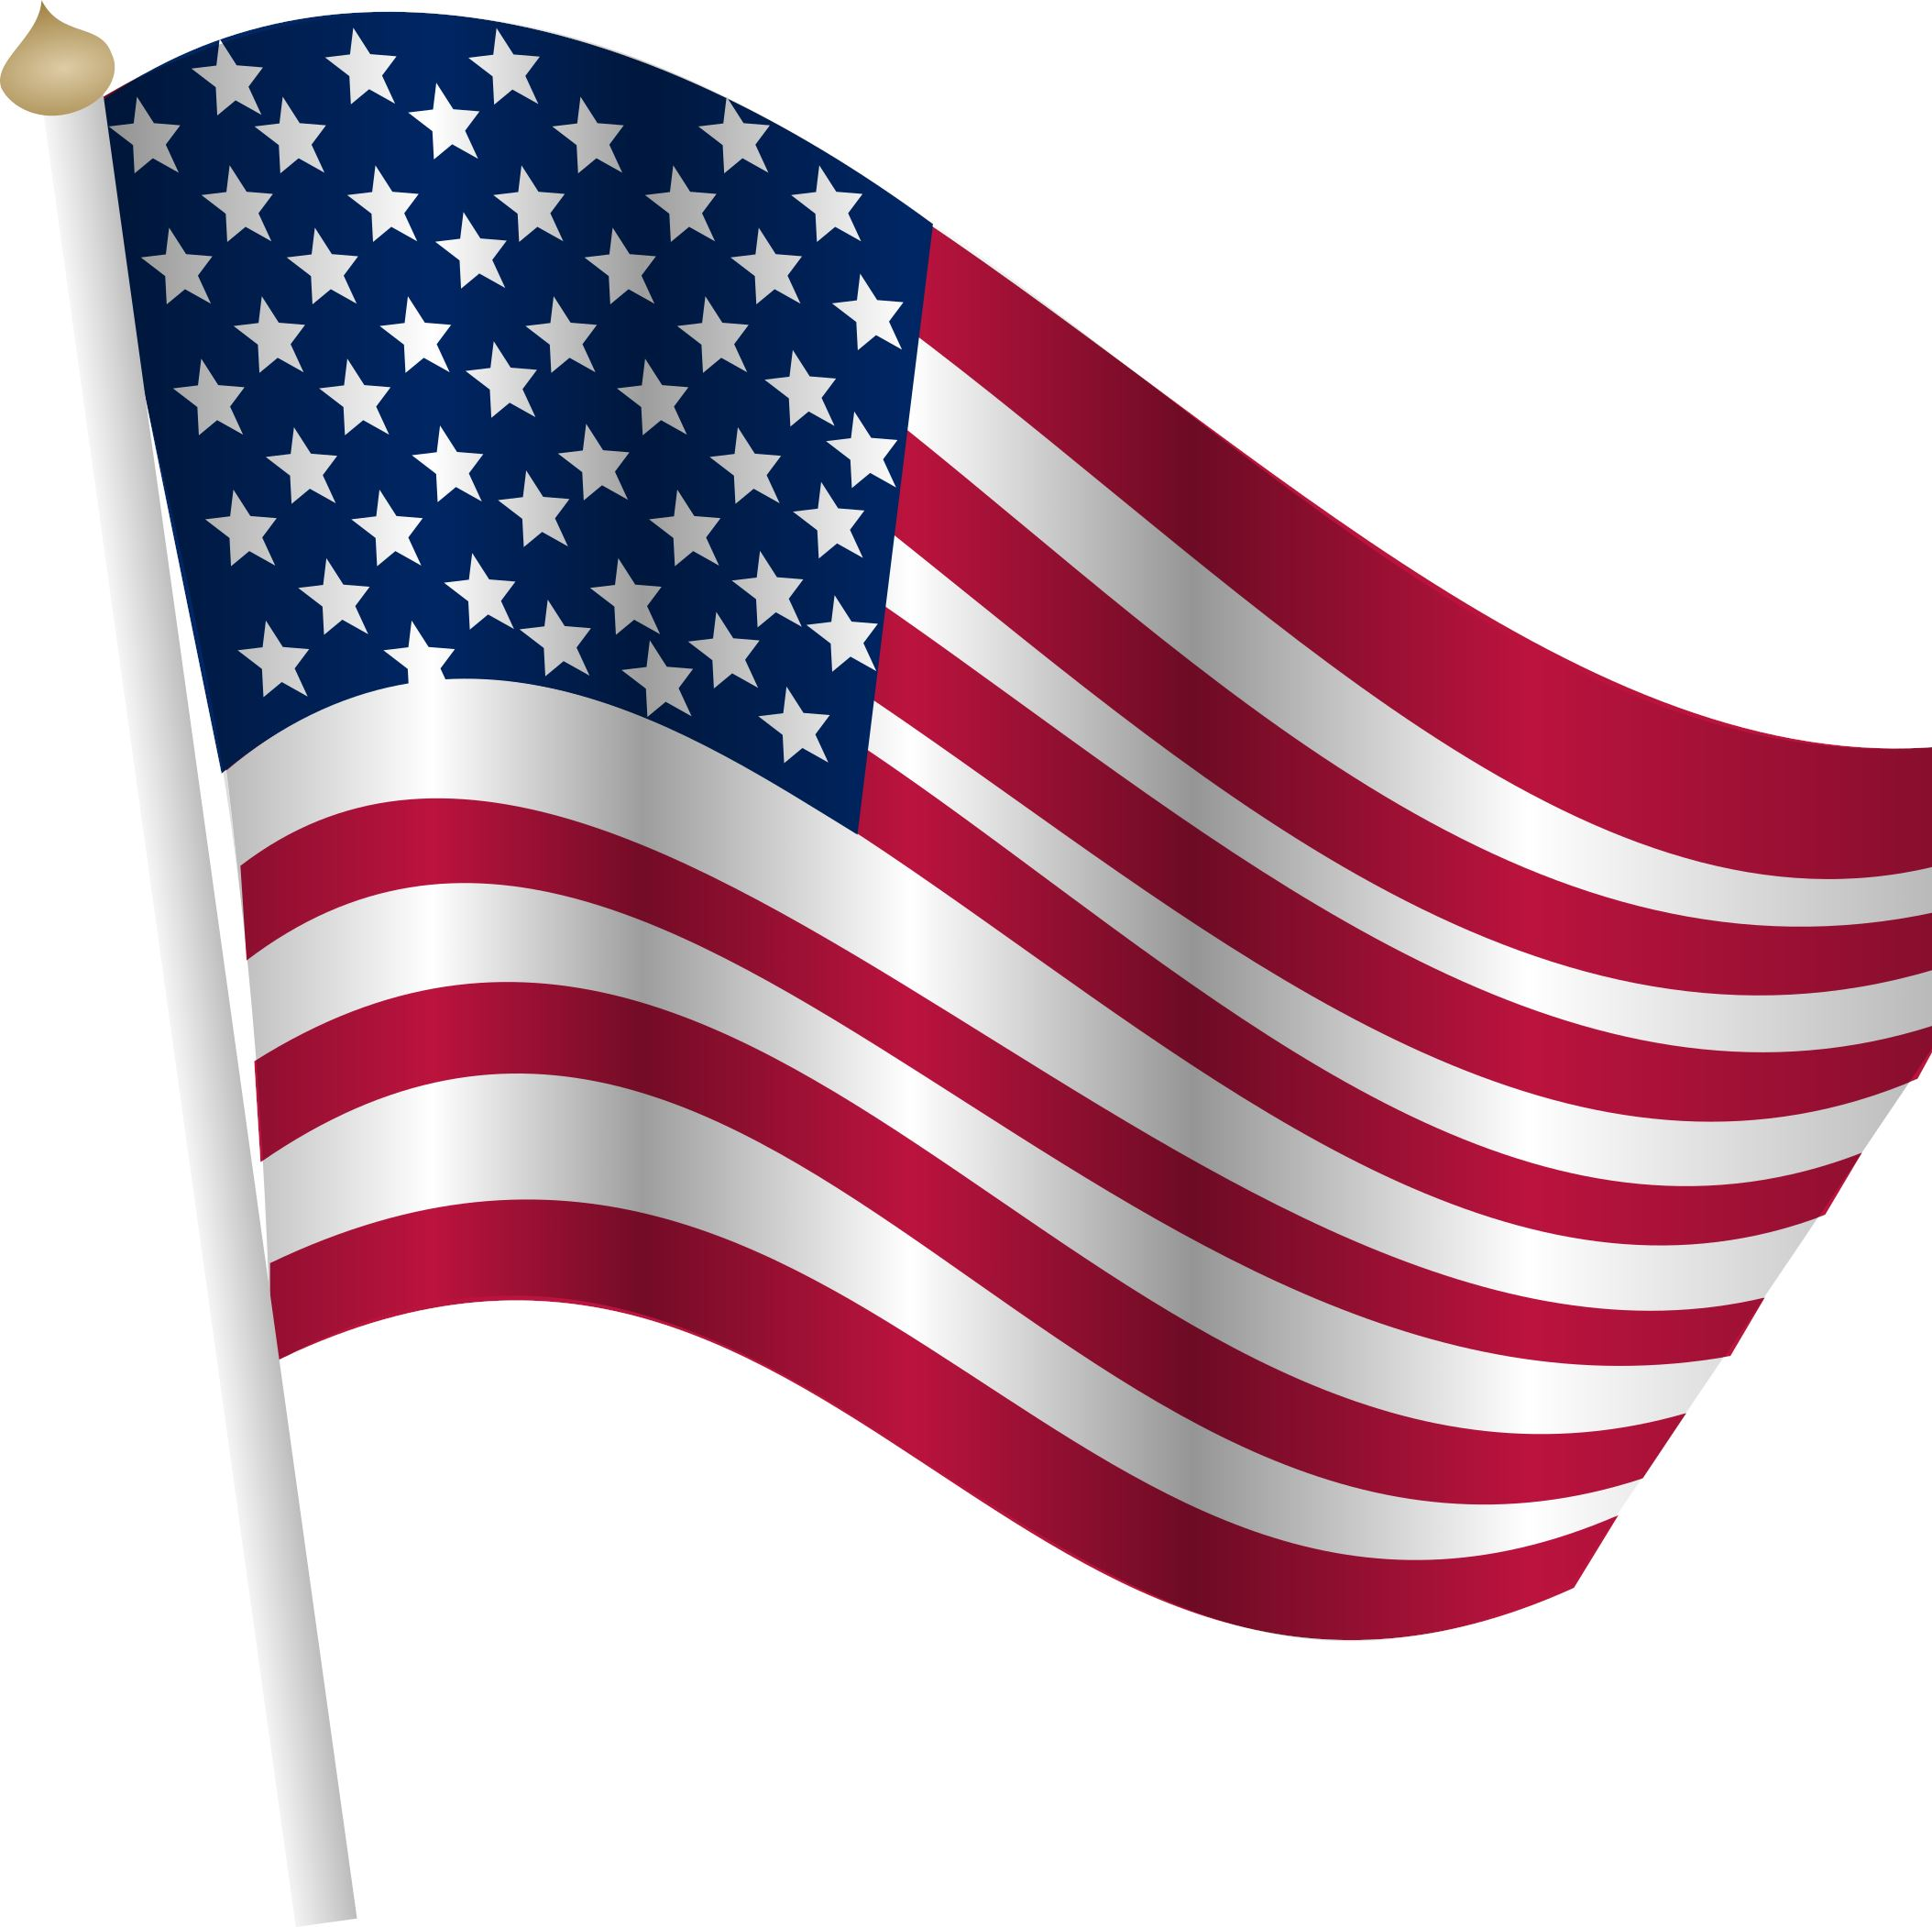 Americn-flag copy_thumb.jpg